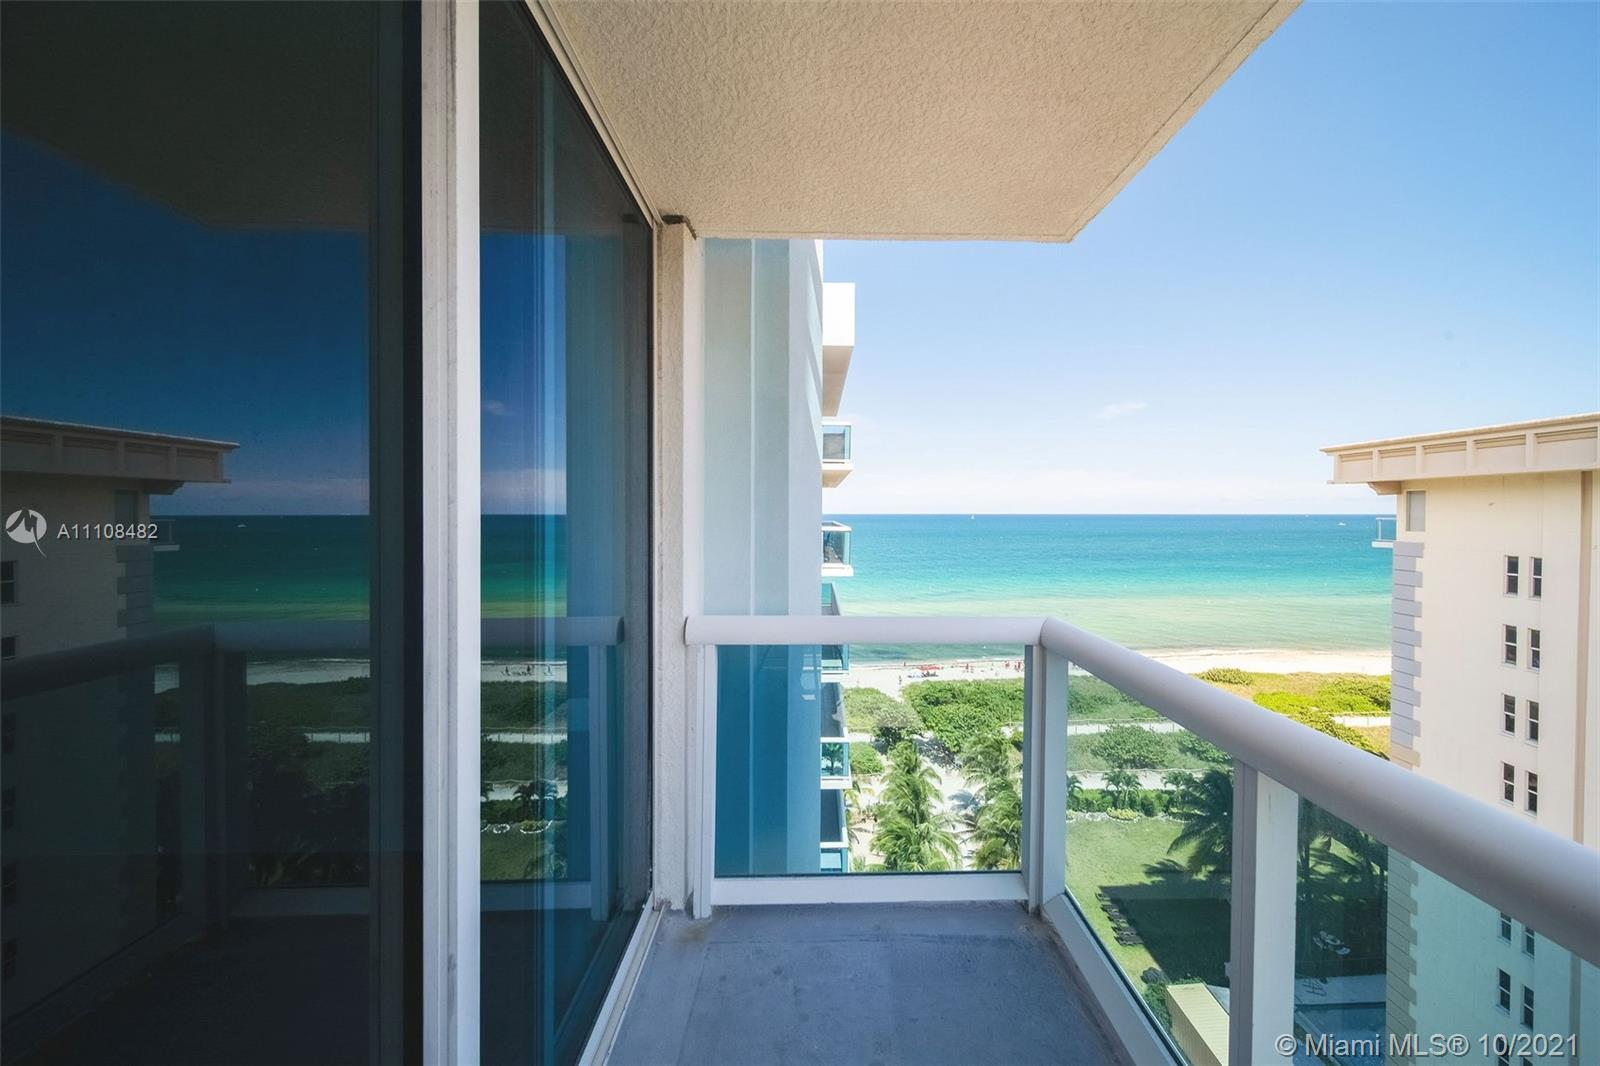 Enjoy beautiful views of ocean & Intracoastal from this 2 bedroom, 2 bath condo located on the beach